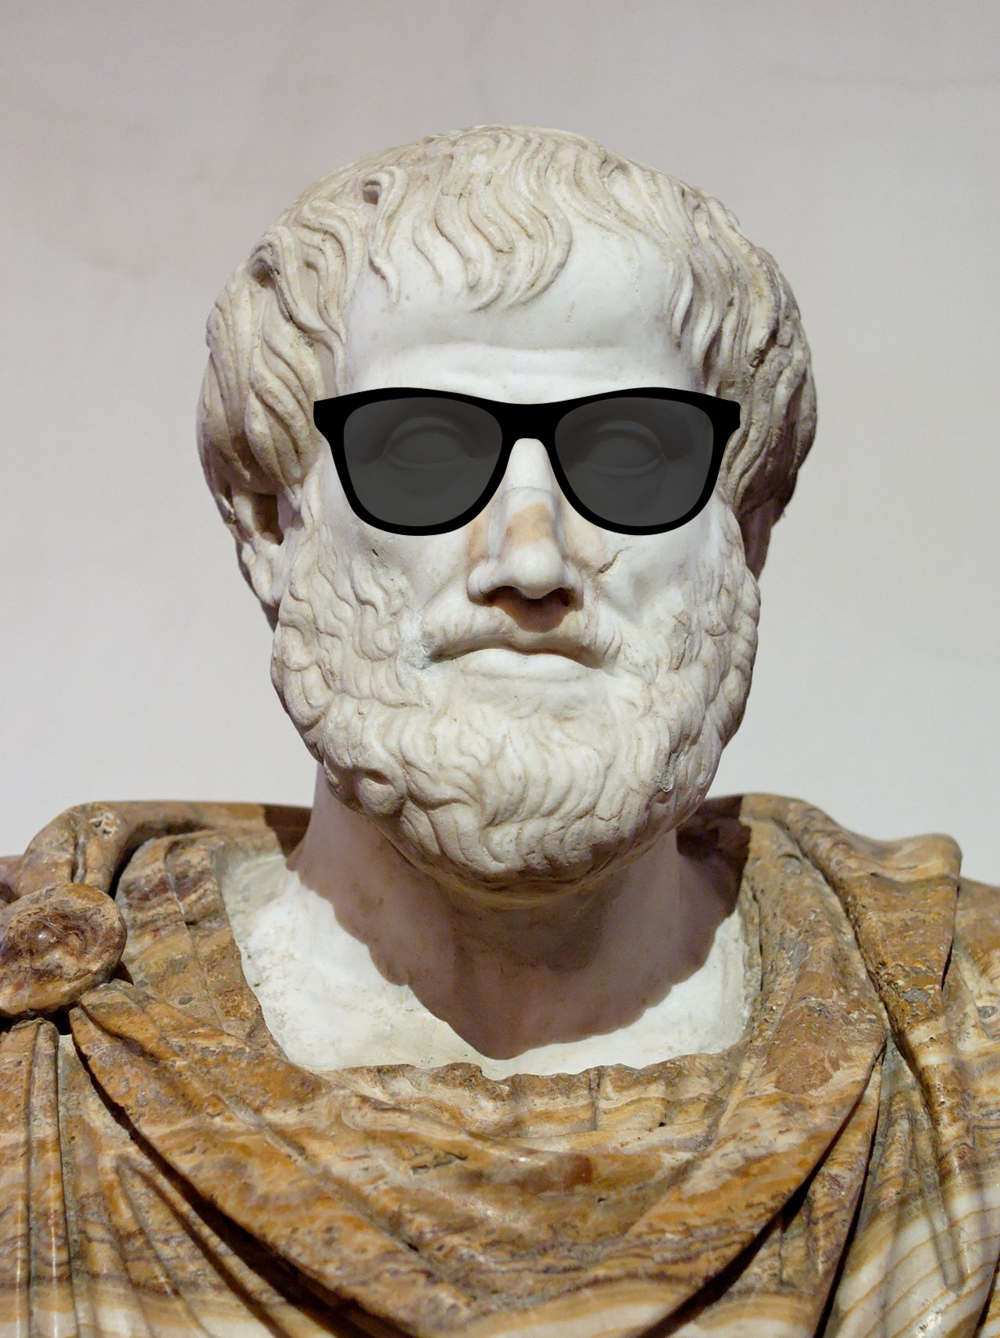 Seen by many as one of the founding fathers of science, Aristotle was also totally awesome.